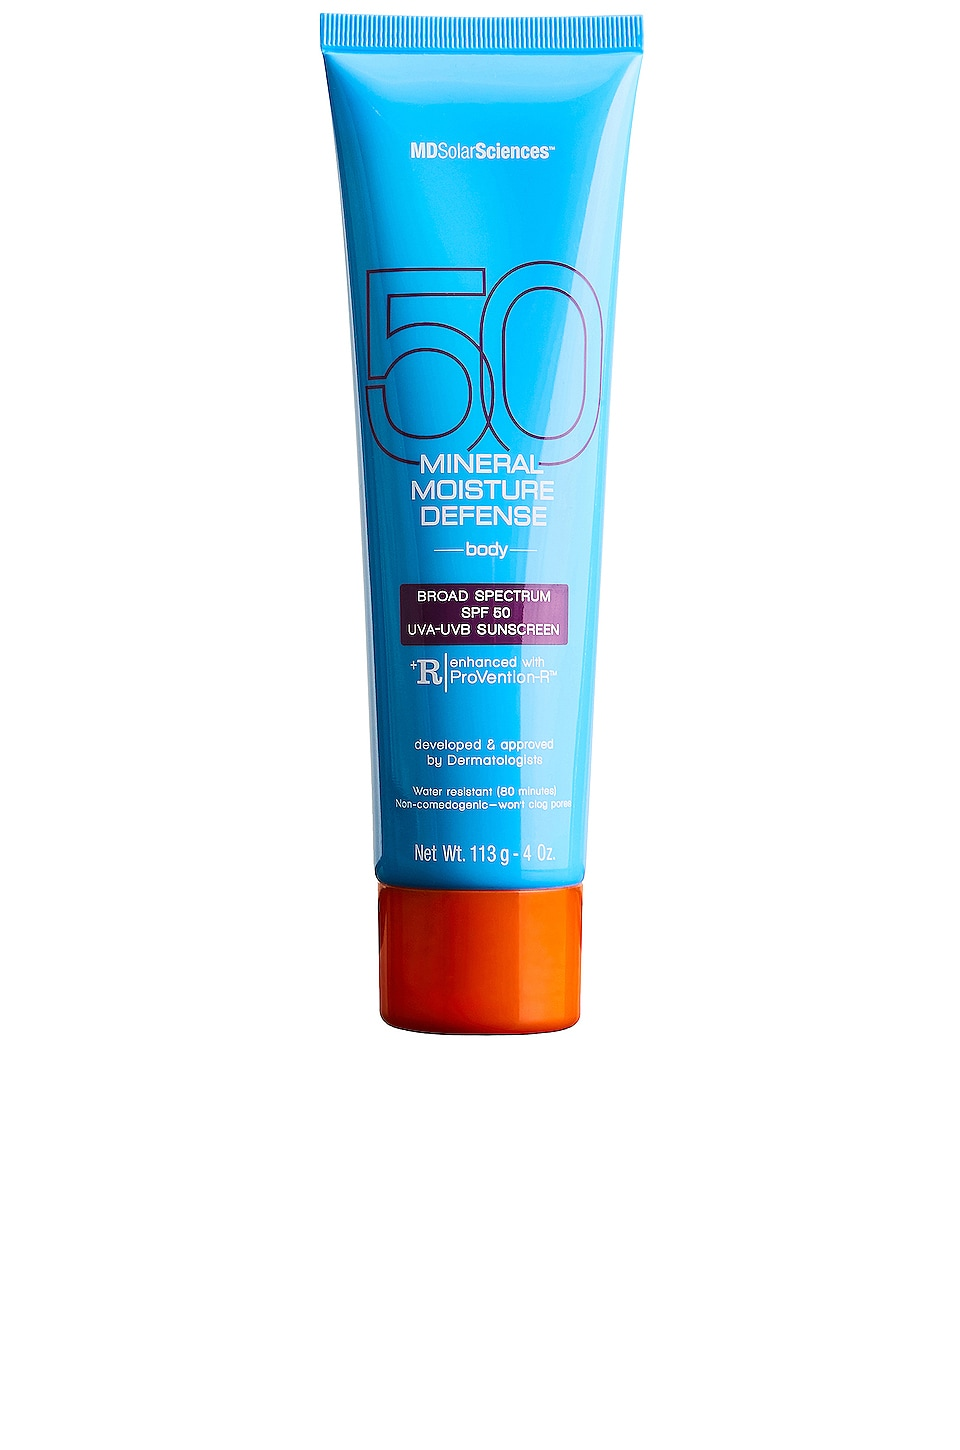 MDSolarSciences Mineral Moisture Defense SPF 50